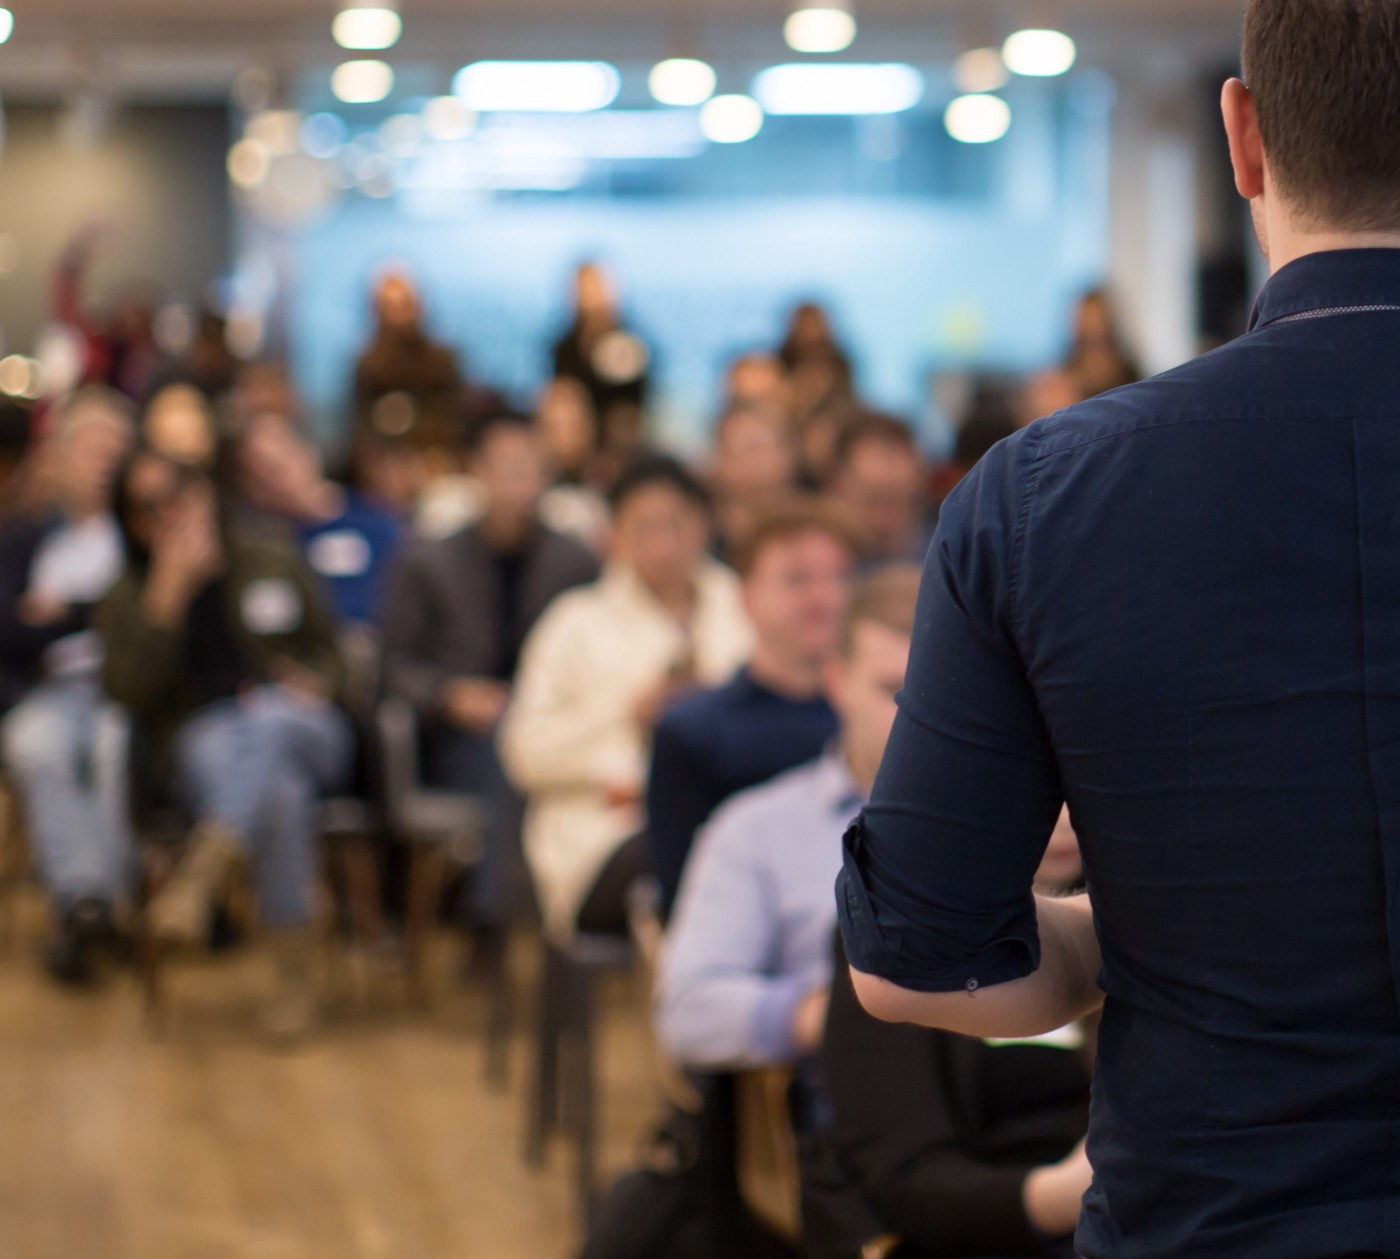 A man presenting to a room full of people.